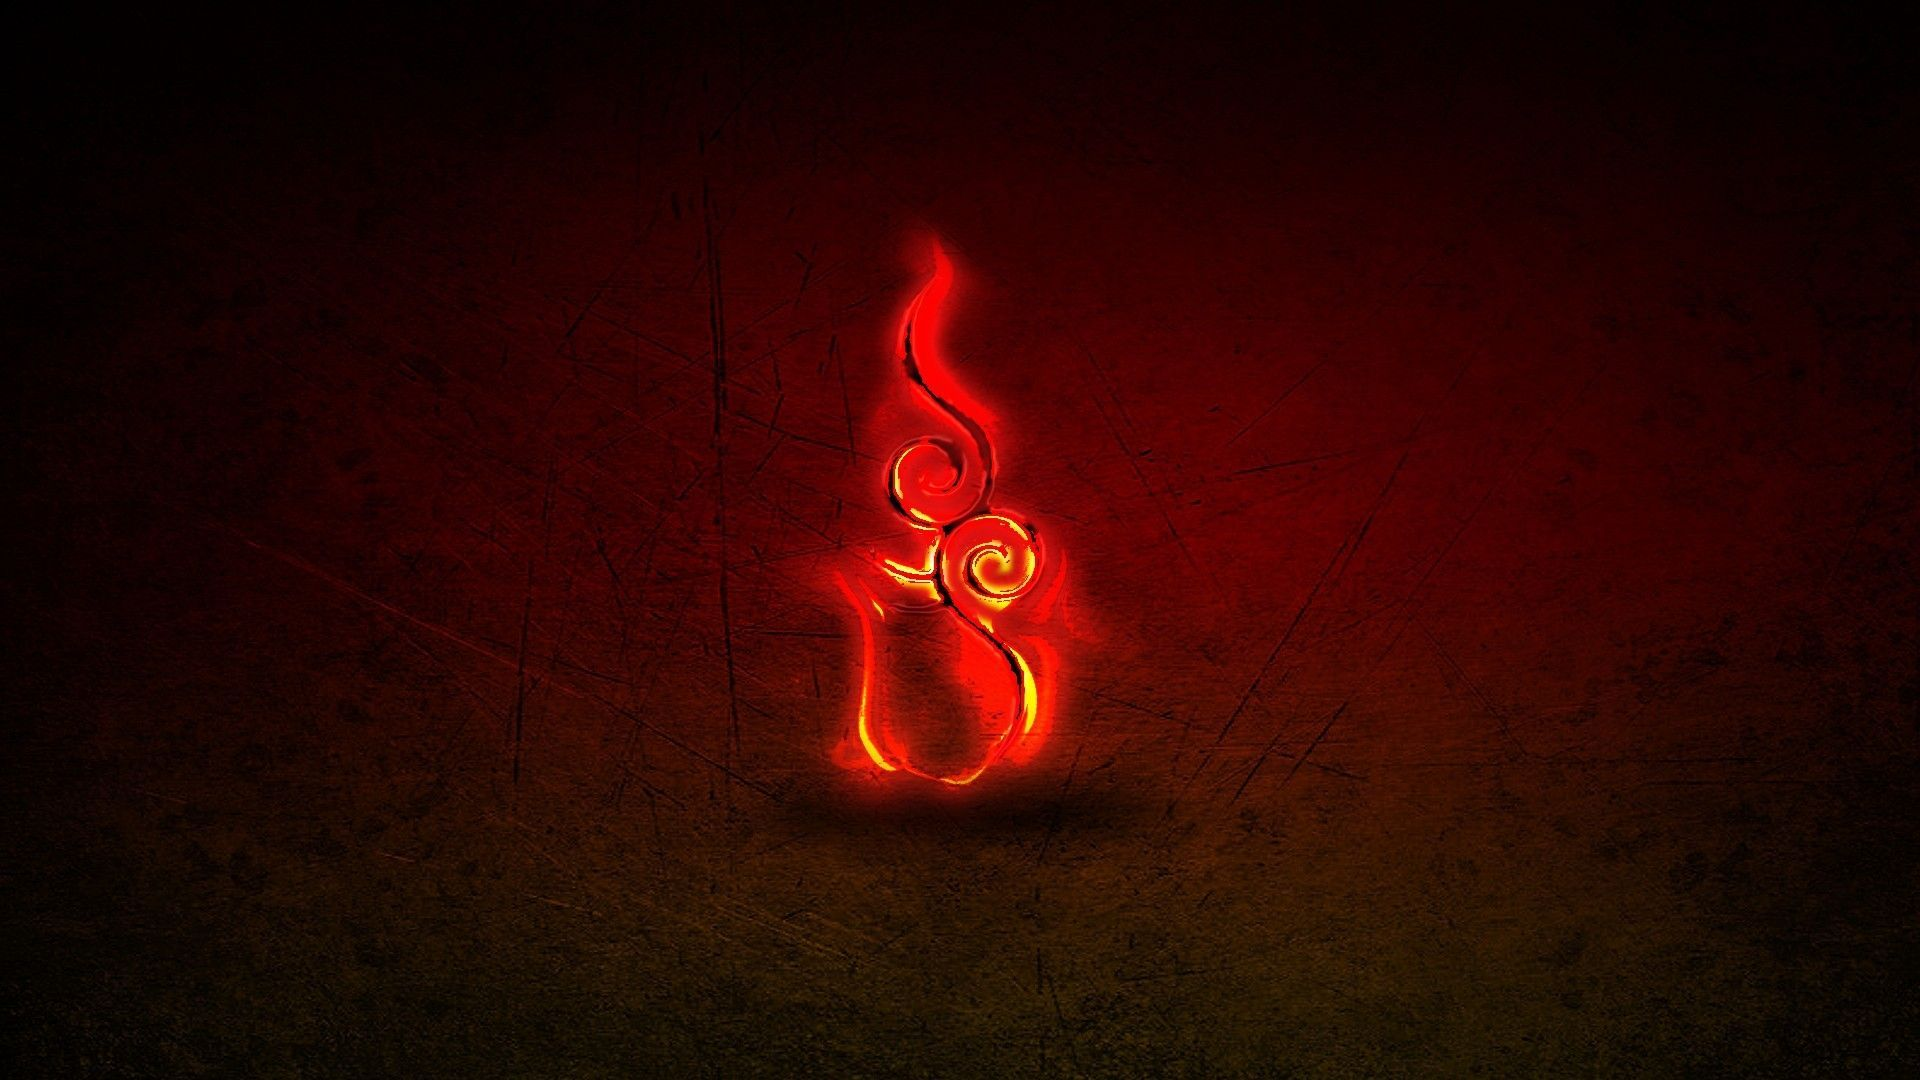 Red Fire Wallpapers